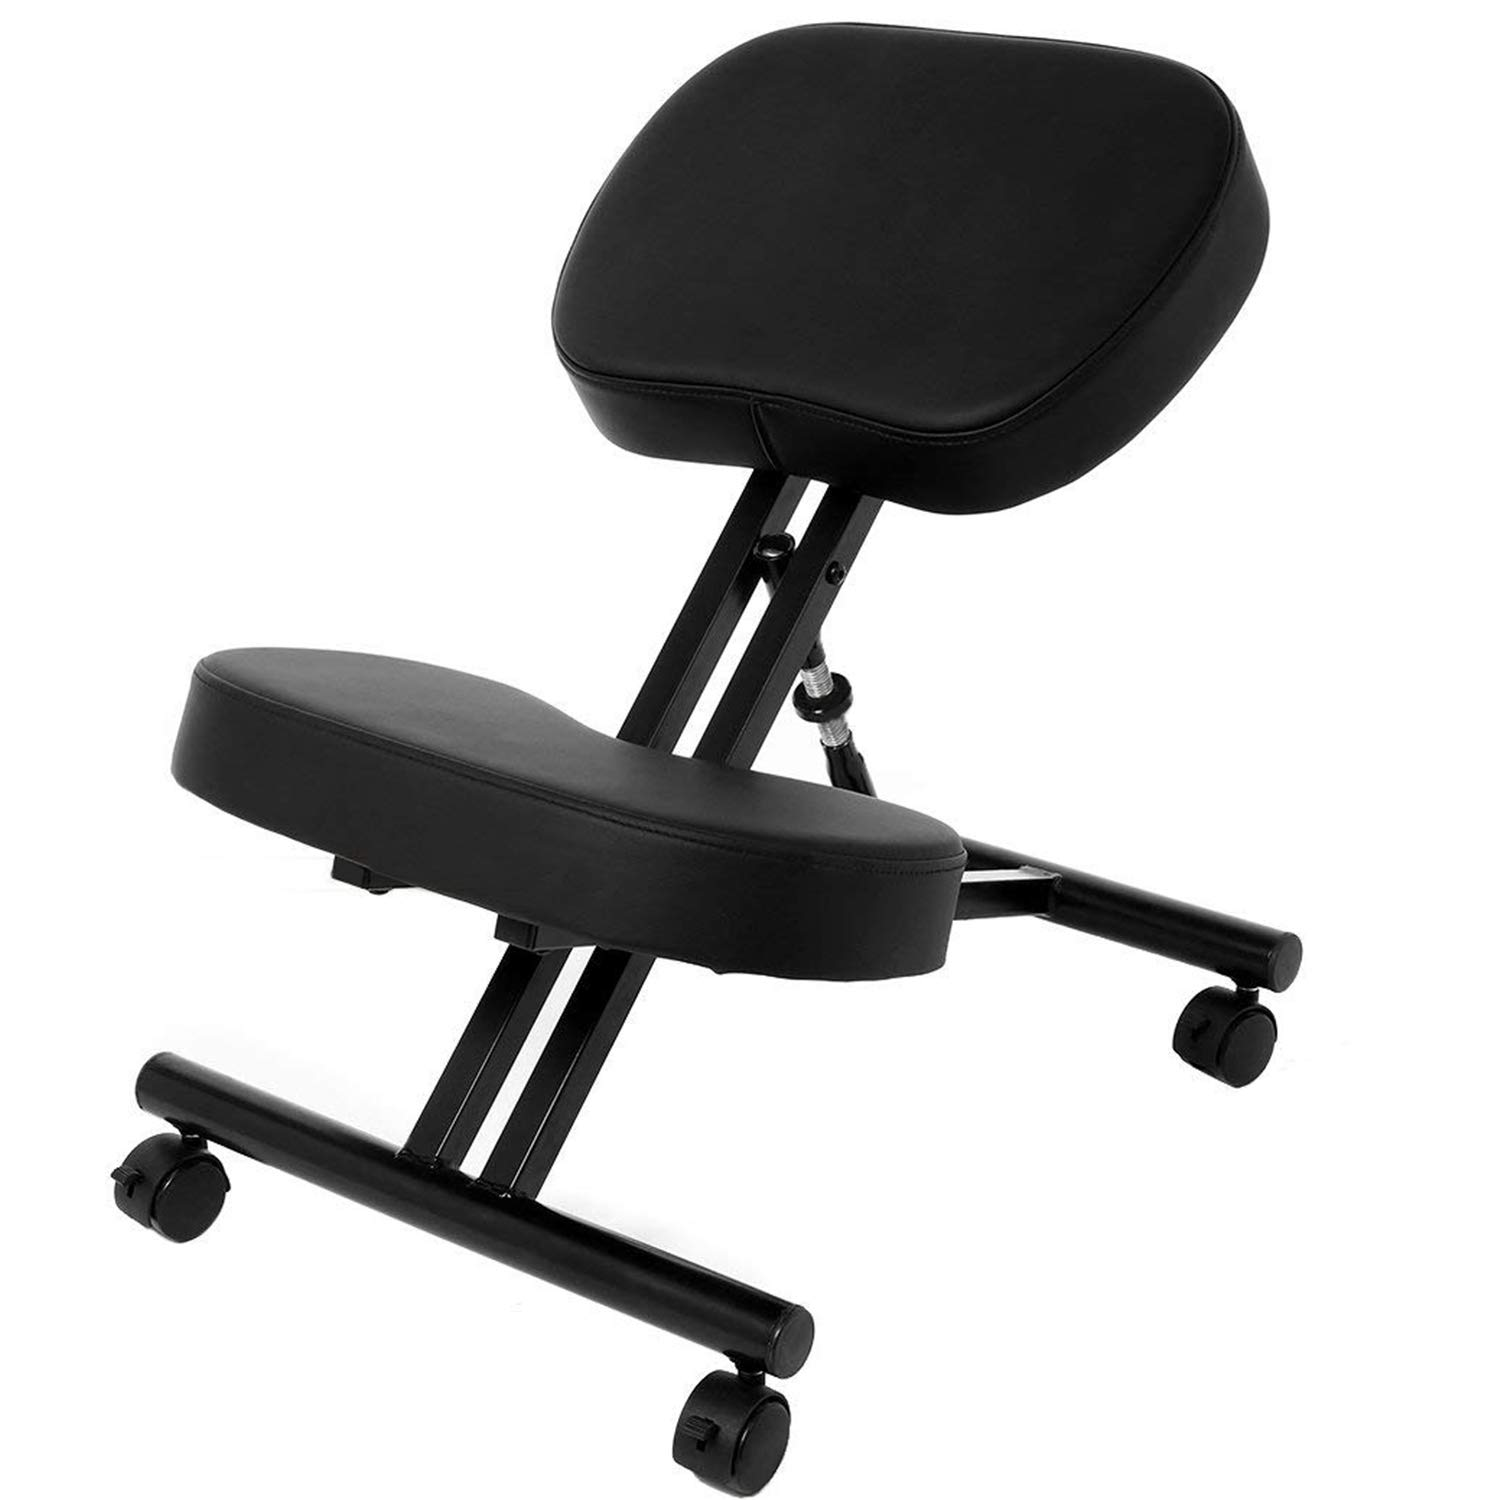 Ergonomic Kneeling Chair, Adjustable Stool for Home and Office - Improve Your Posture with an Angled Seat - Thick Comfortable Moulded Foam Cushions - Smooth Gliding Casters & Brake Casters by Papafix